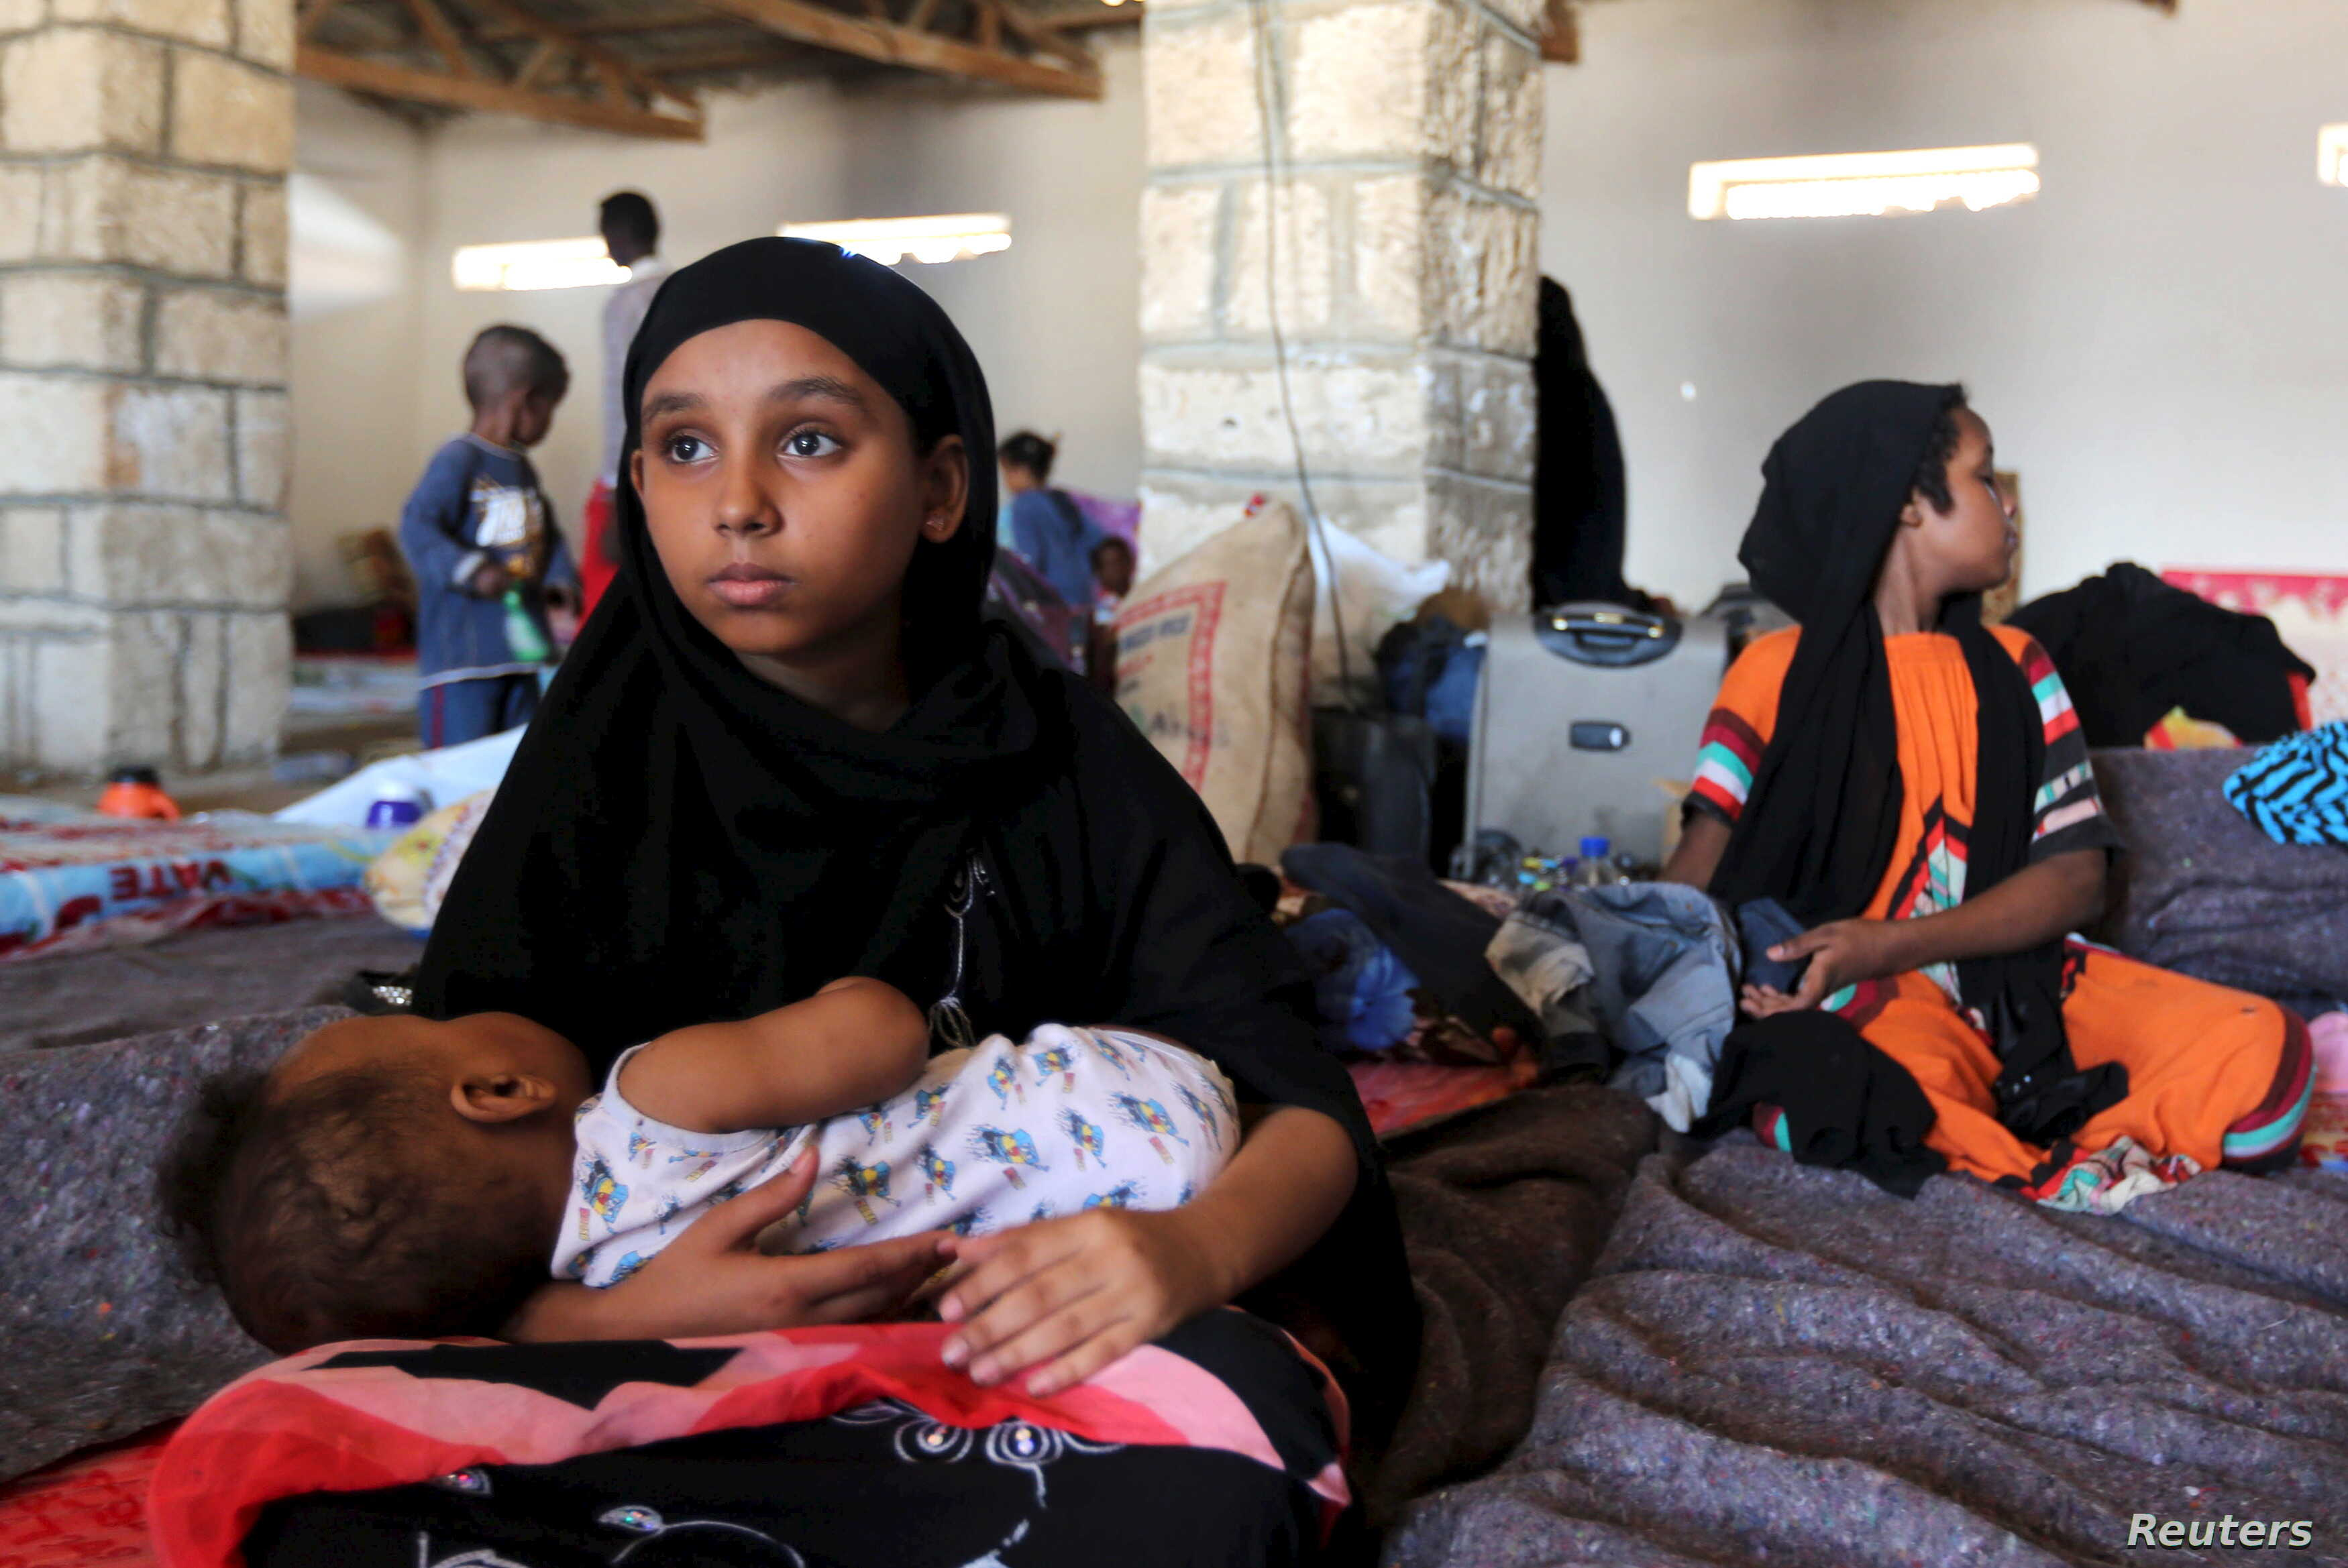 A Yemeni refugee cradles a baby in a temporary shelter in Bosasso, a port town in Somalia's Puntland, April 17, 2015.